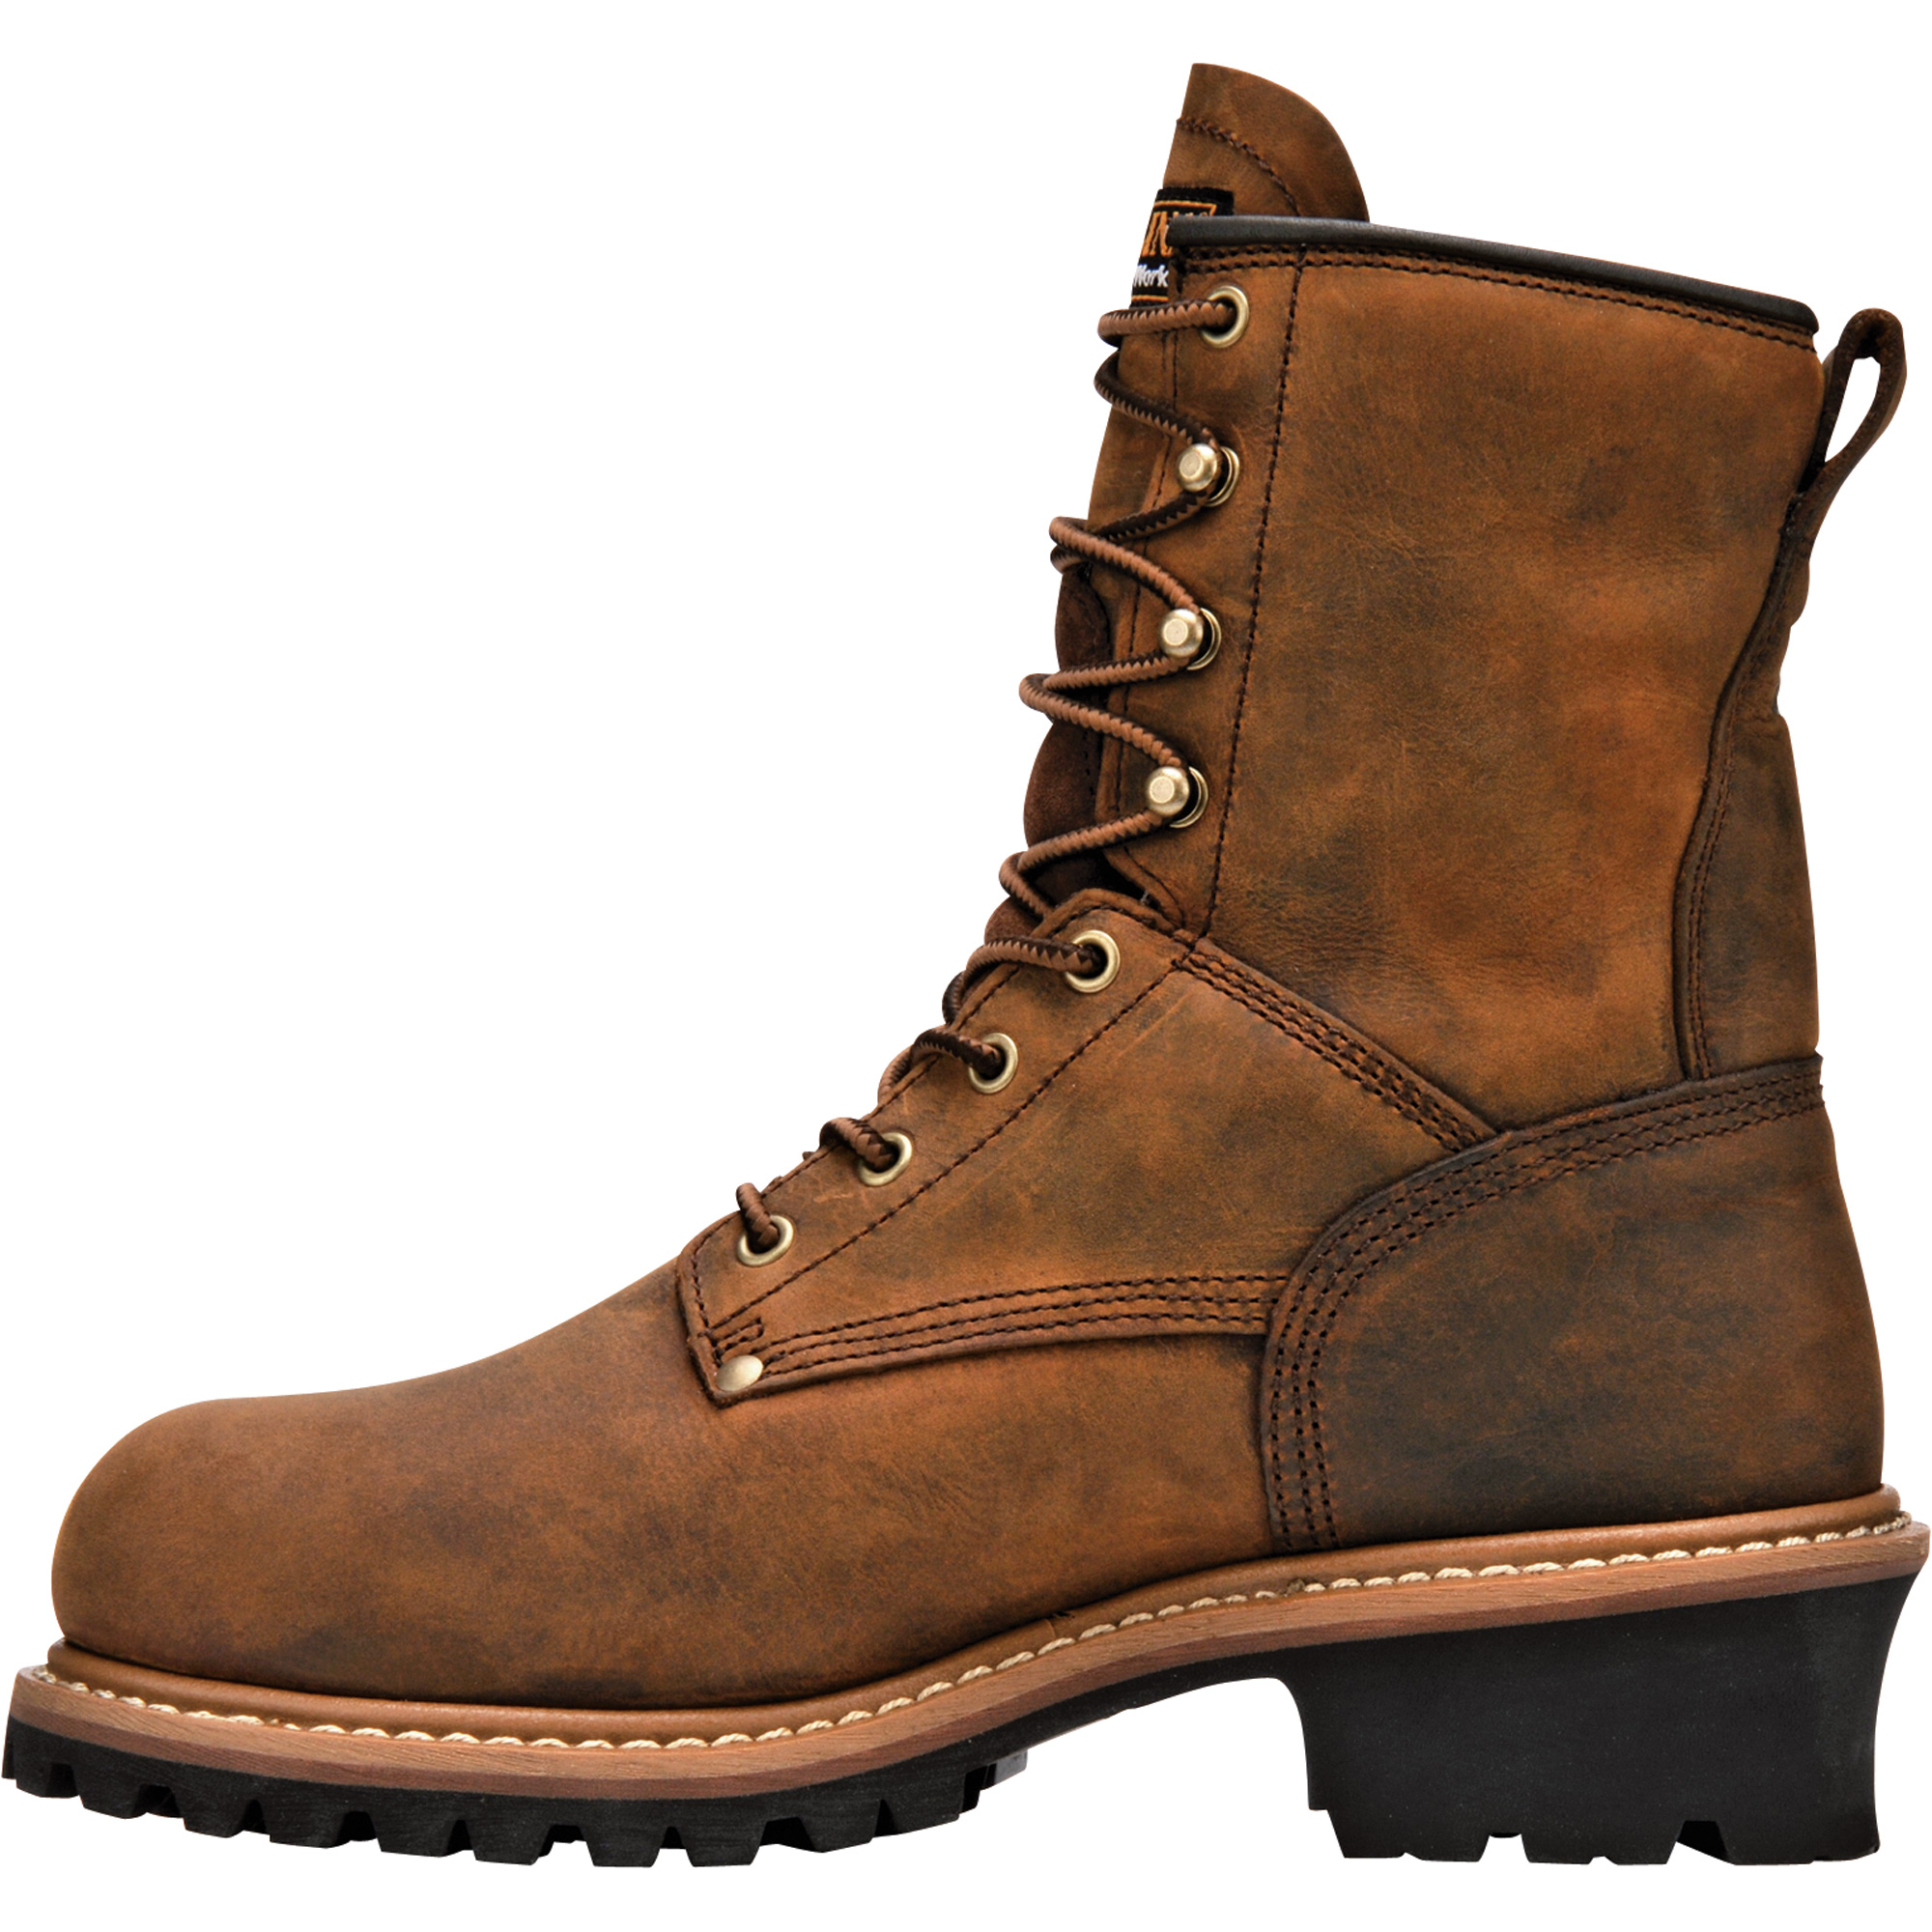 Insulated Steel Toe Work Boots QuFZNHcH